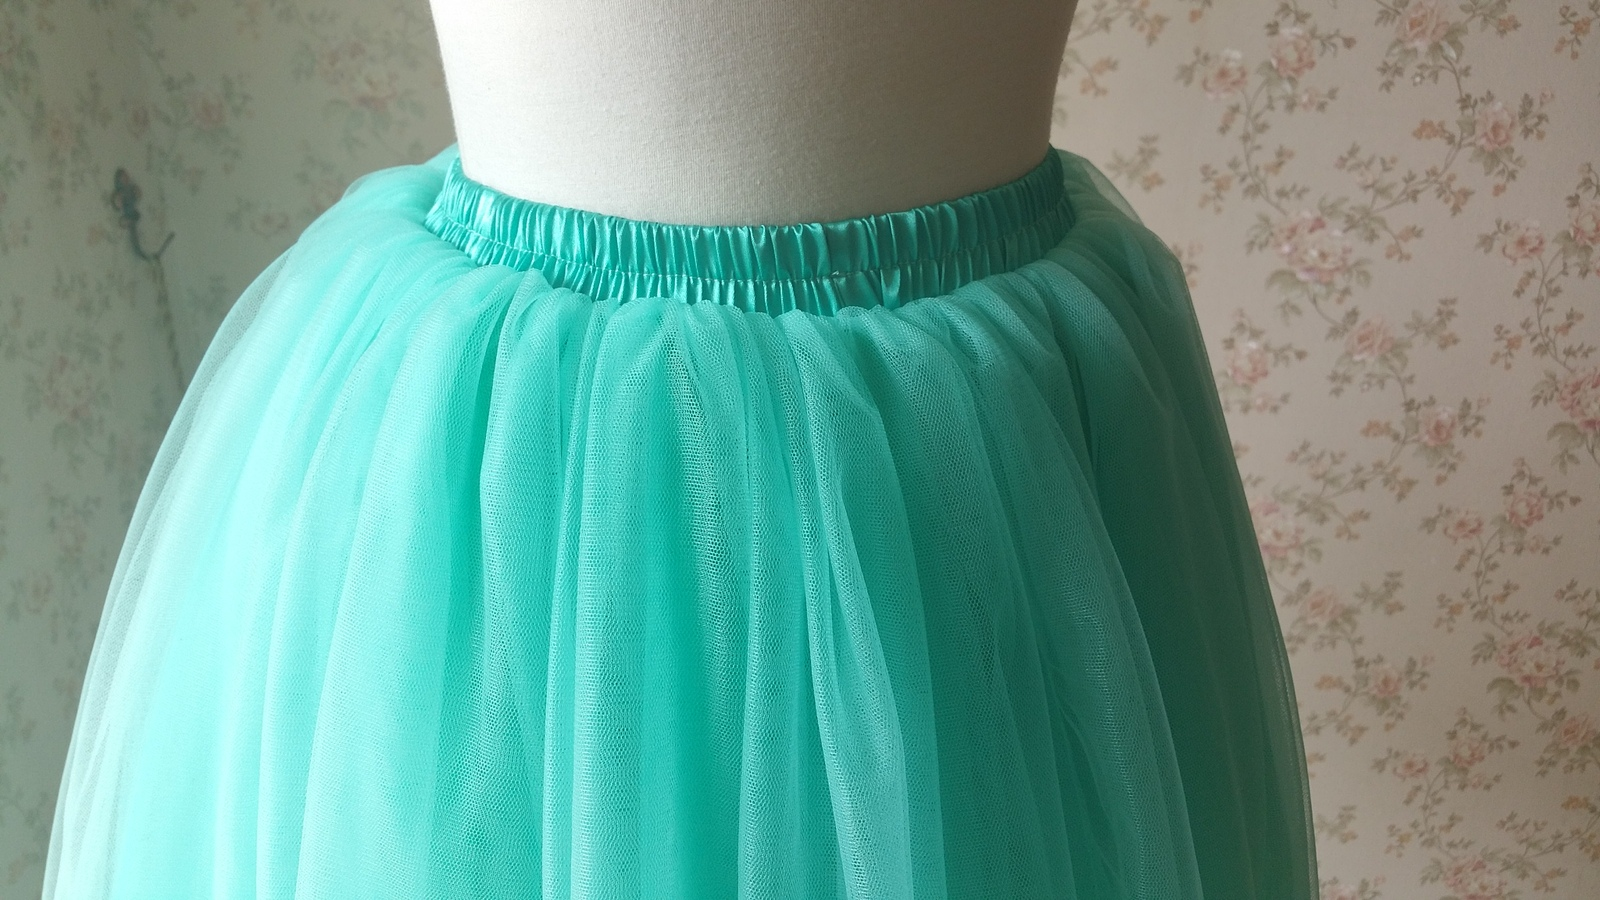 Aqua Knee Tulle Skirt Adult Womens Tutus Plus Size Tutu Skirts Cheap Tulle Skirt